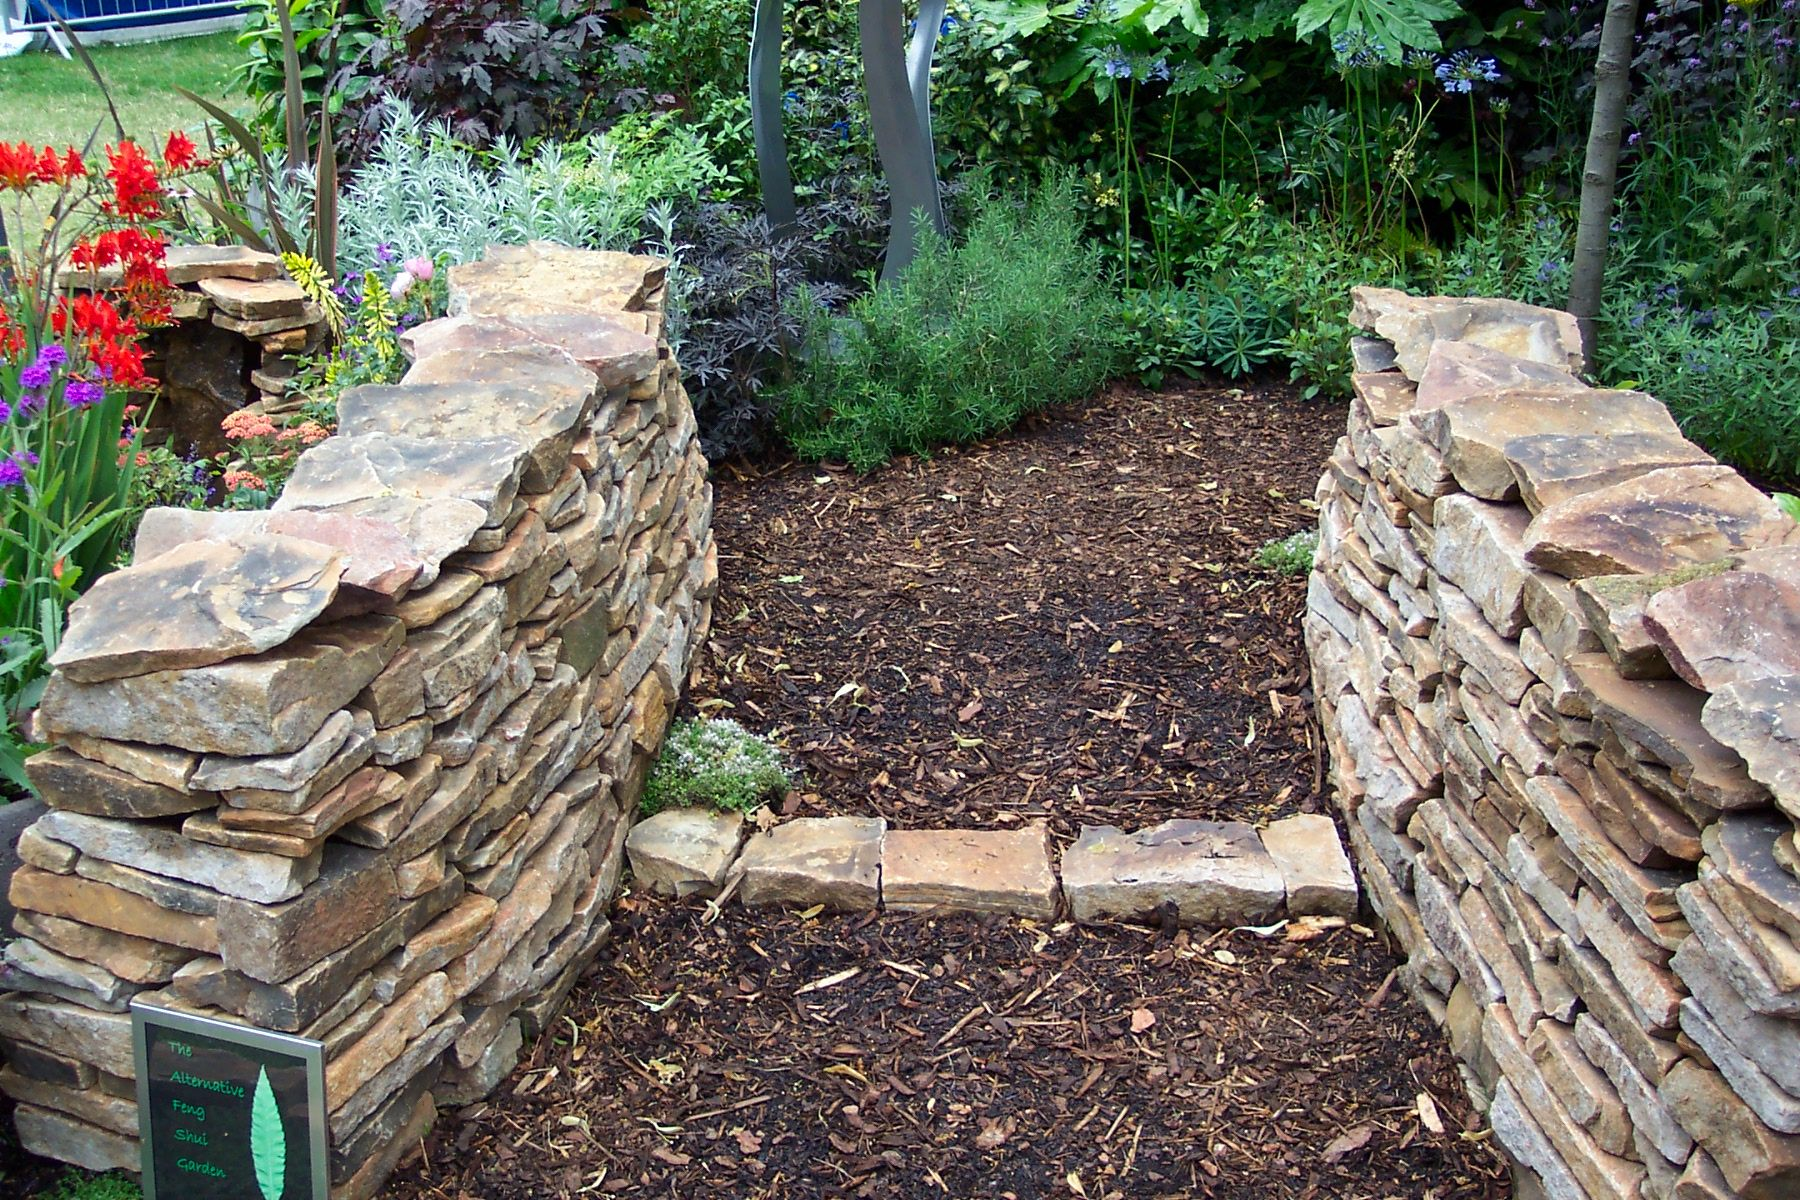 Garden Stone Edging High Quality Garden Edge Stones 9 Rock And Stone Edging For